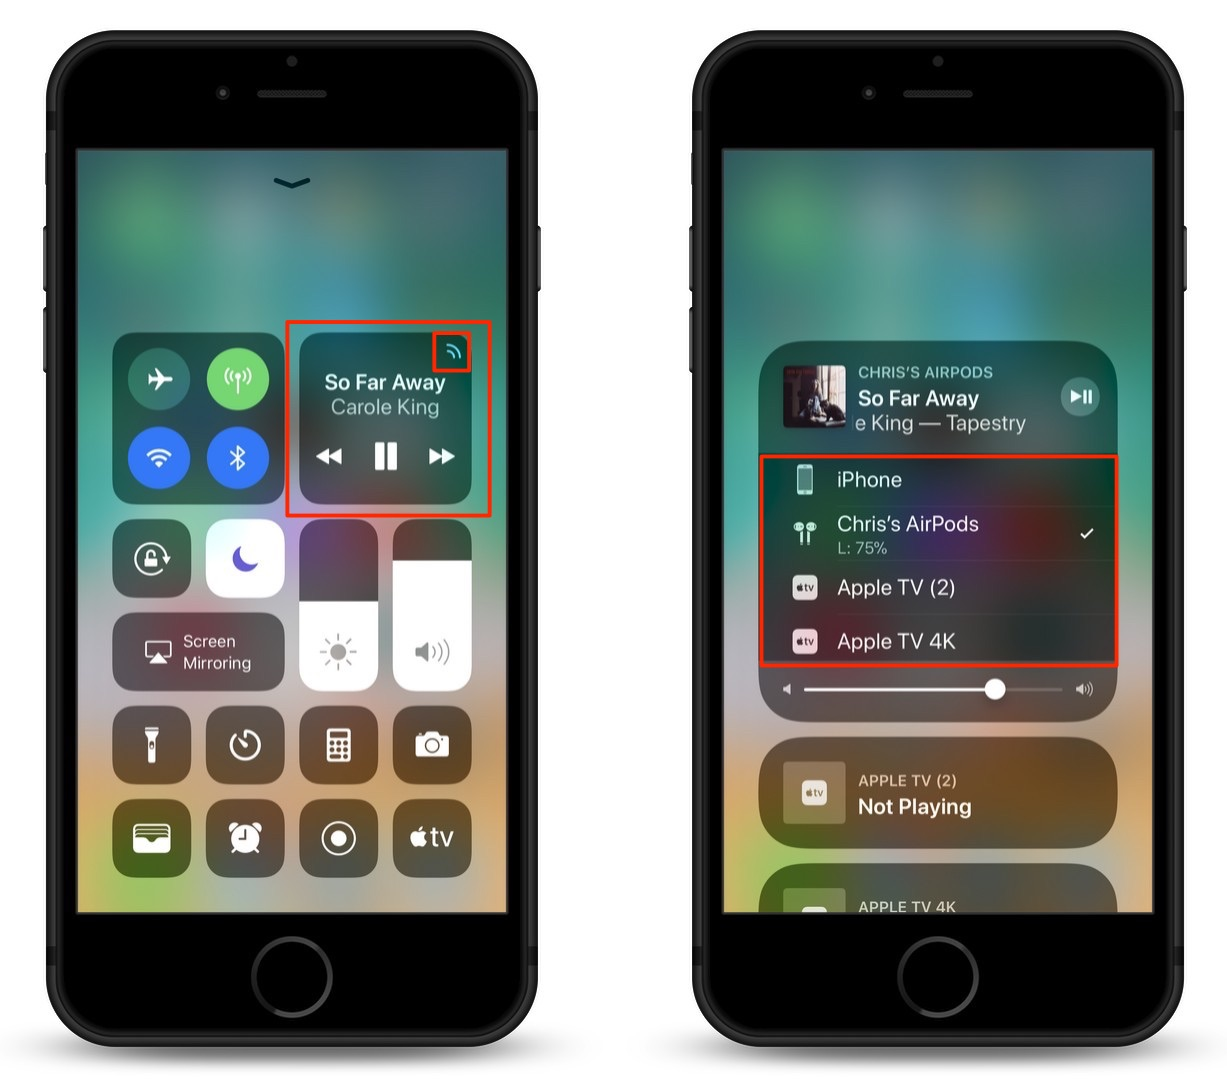 How To Switch Bluetooth Devices in the iOS 11 Control Center